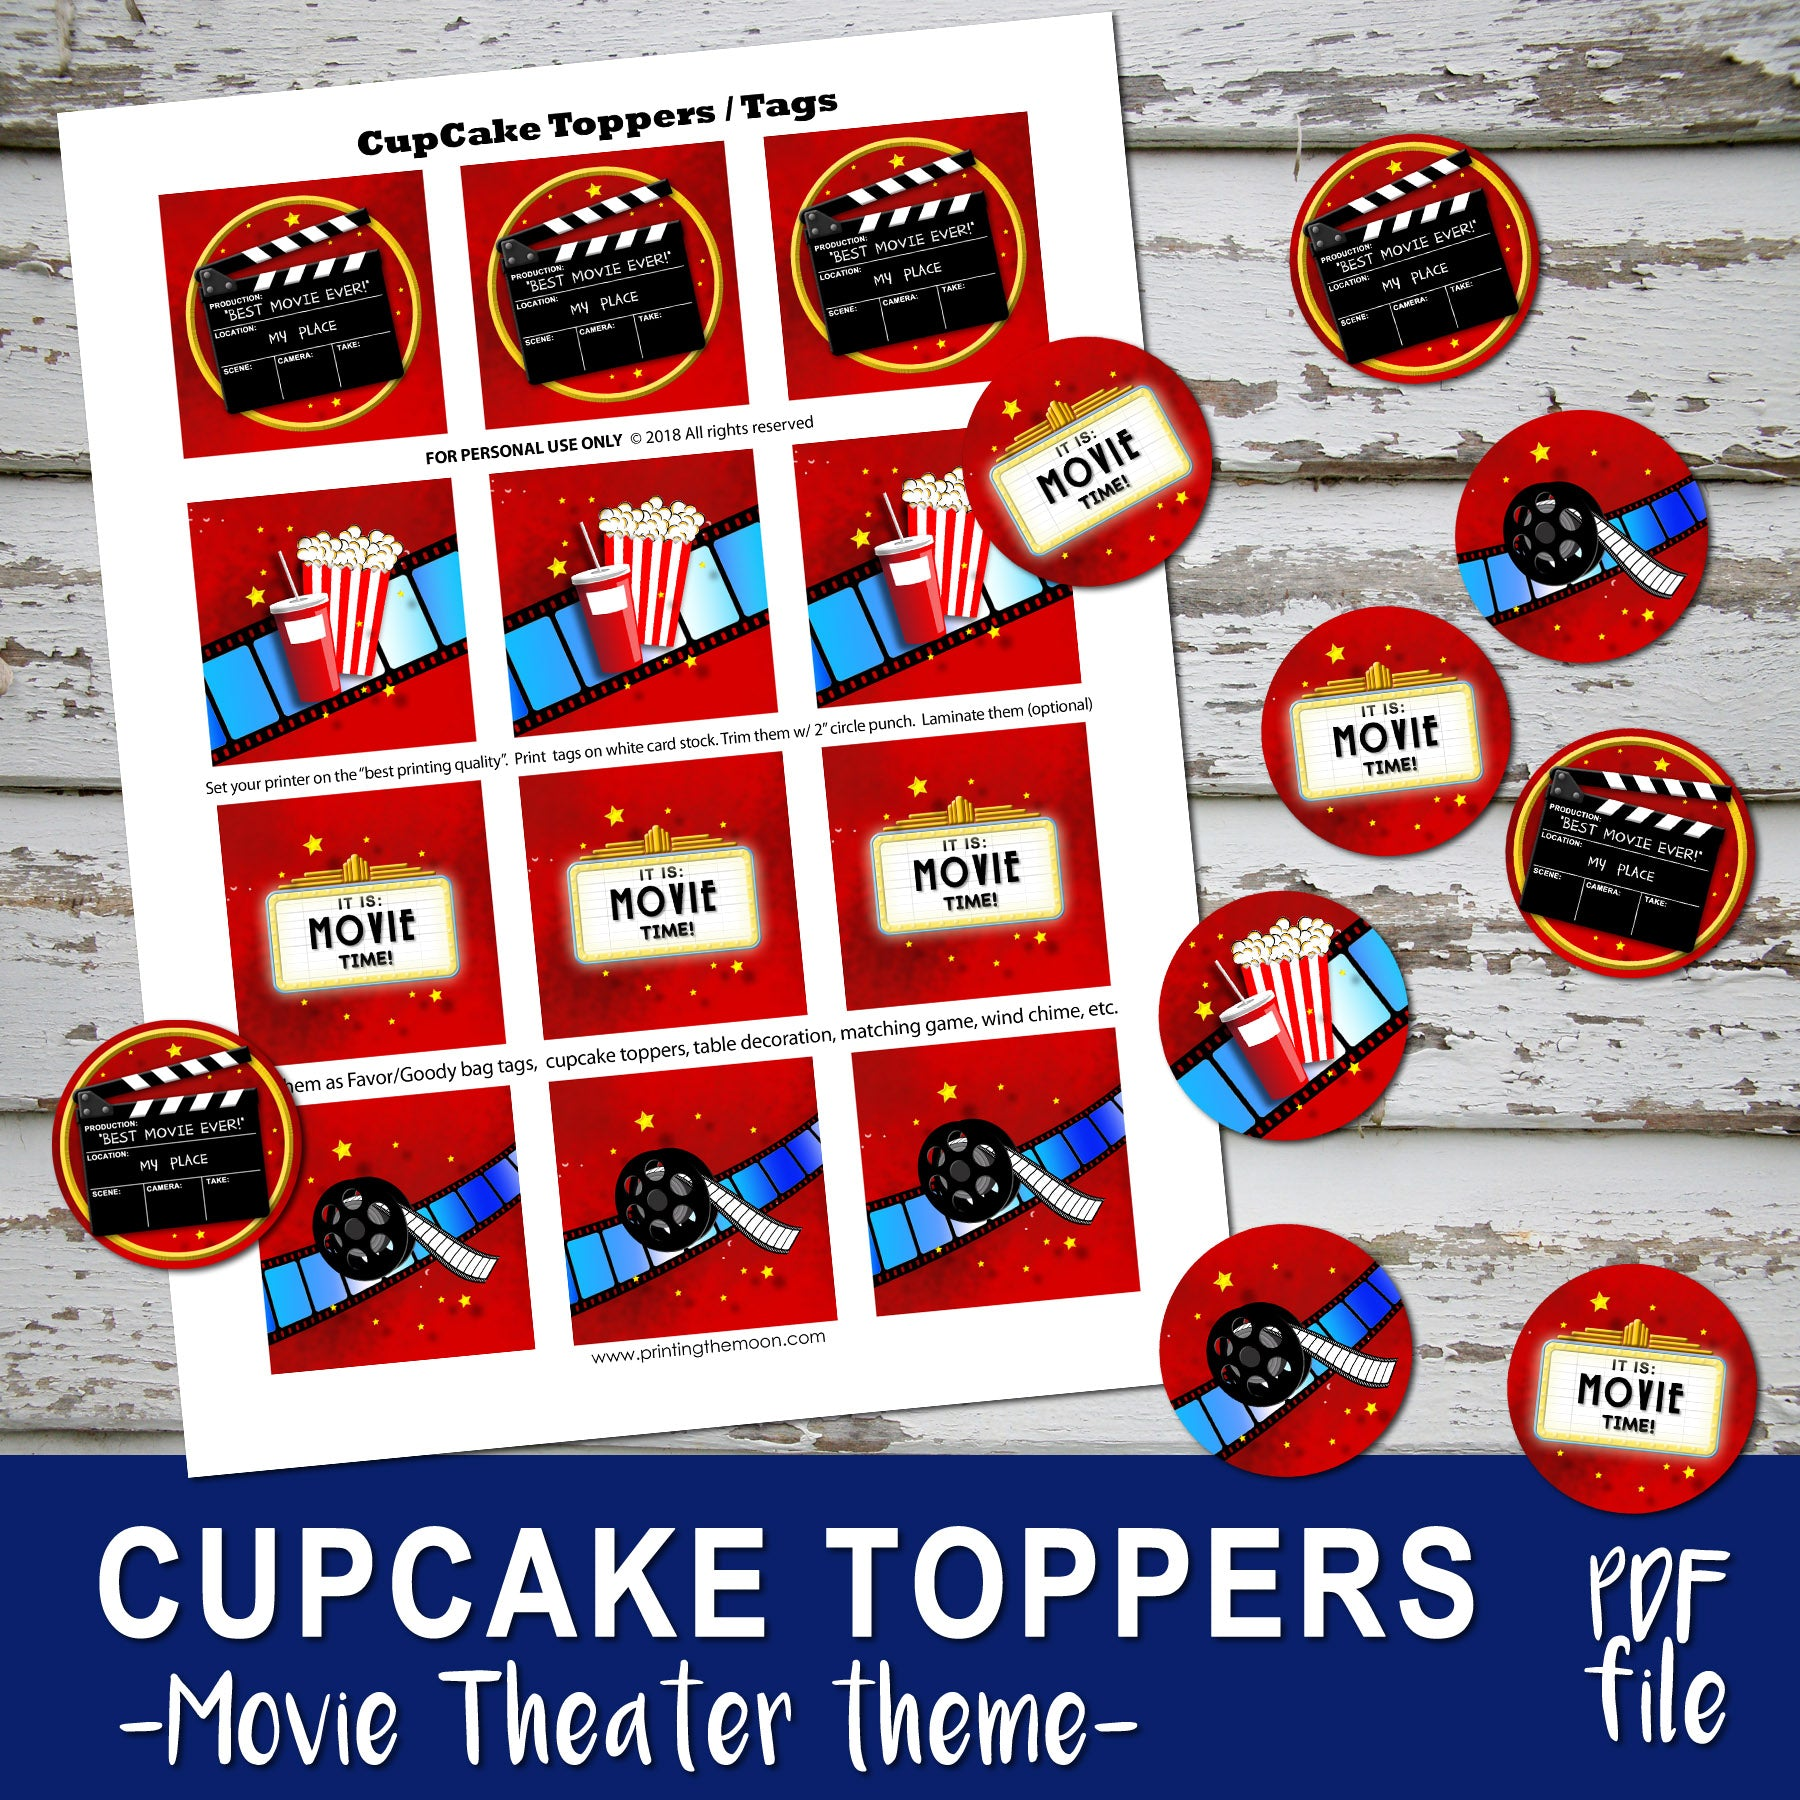 Movie Theater Birthday Cupcake Toppers Movies Cinema Party Digit Printing The Moon